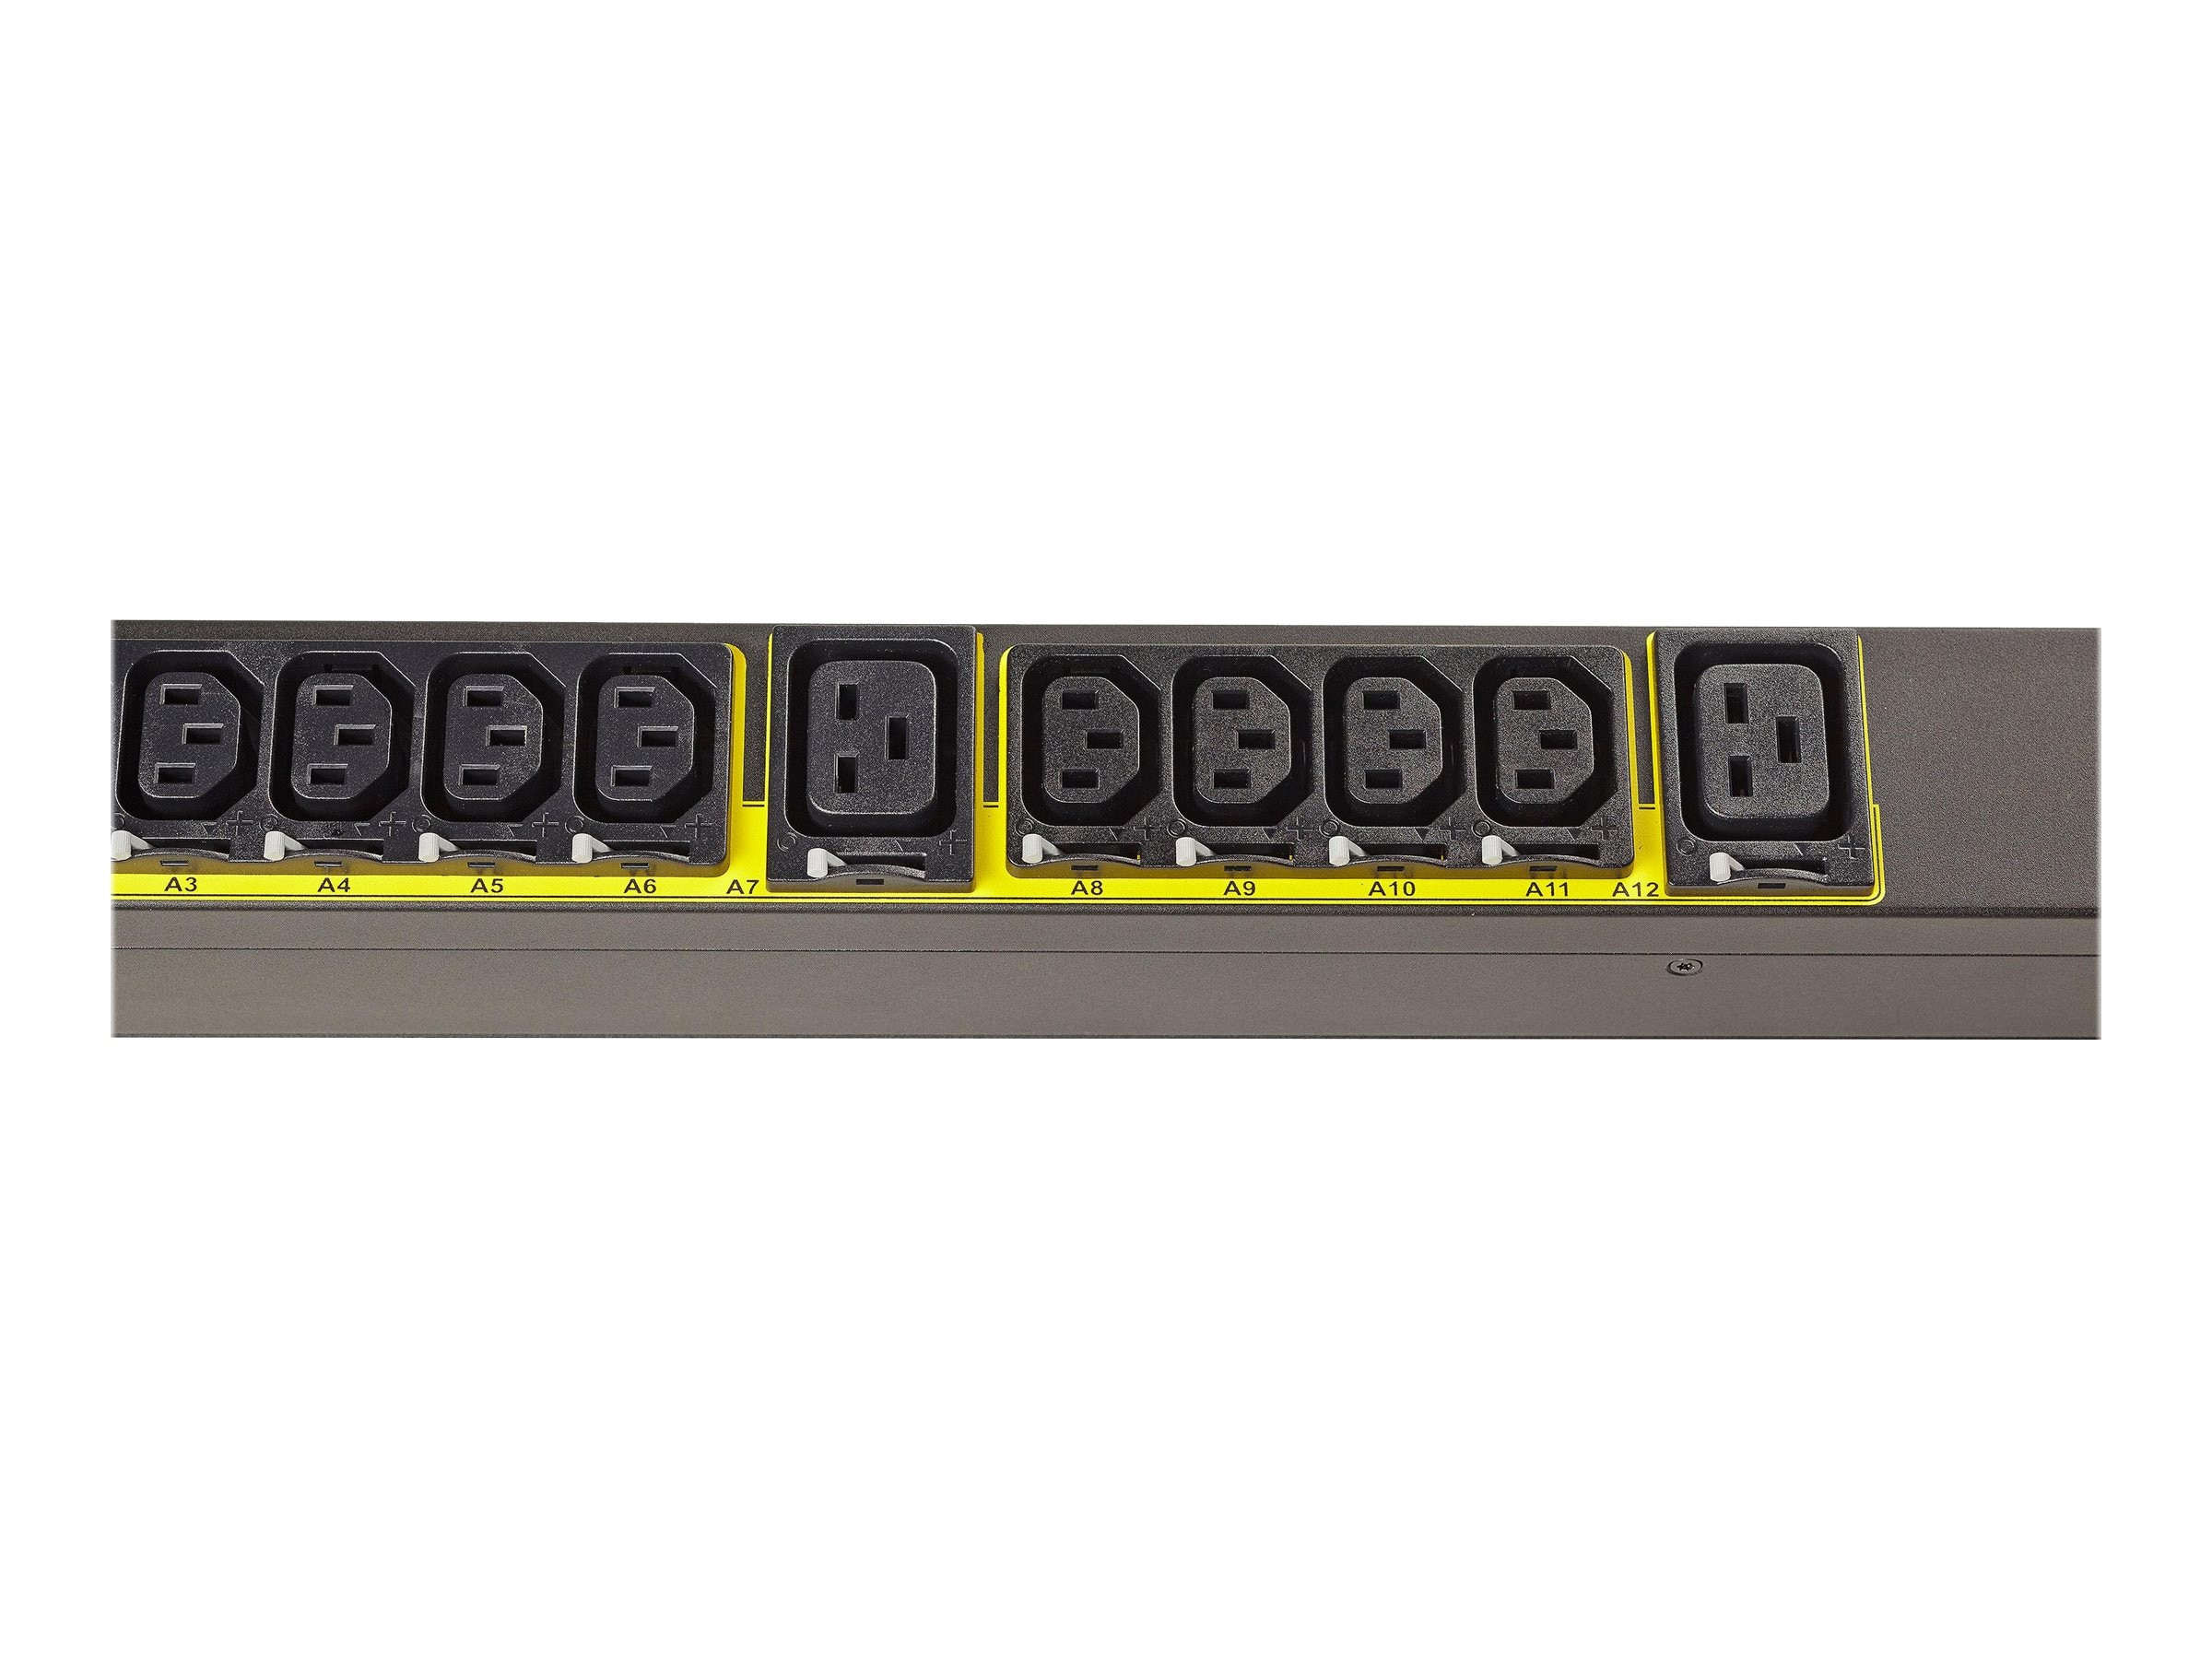 Eaton Network Monitoring ePDU 1.44kW 120V 12A 0U 5-15P Input 10ft Cord (8) 5-15R Outlets, EMA111-10